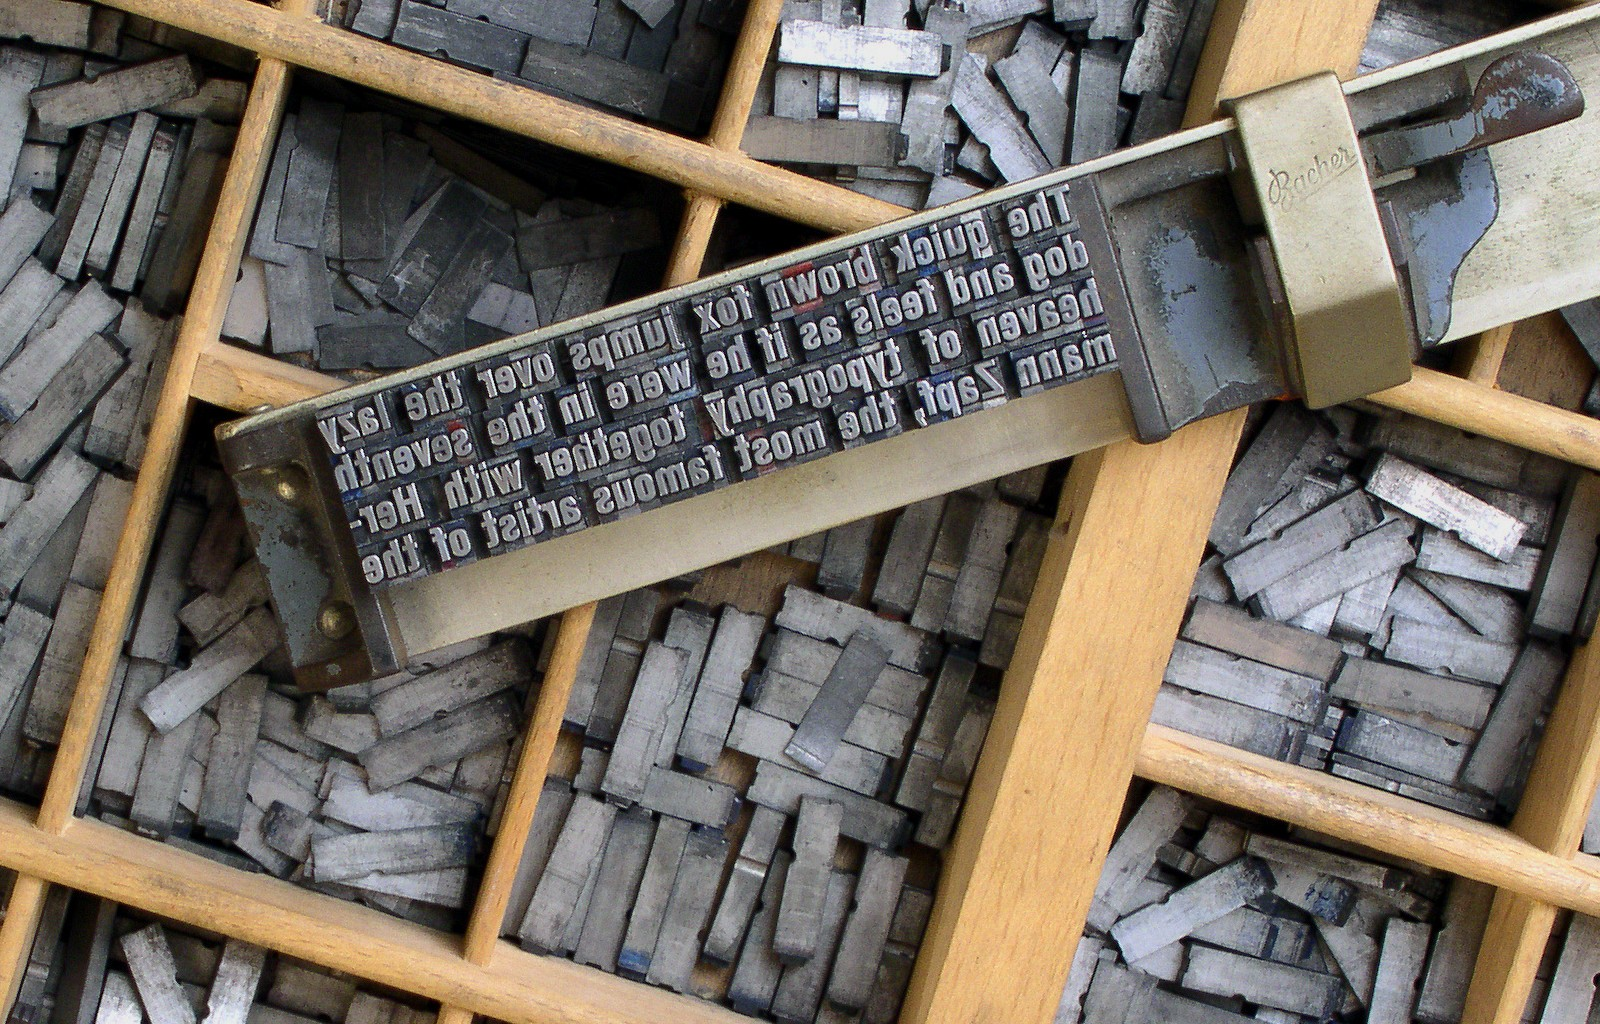 Moveable Type in a Composing Stick